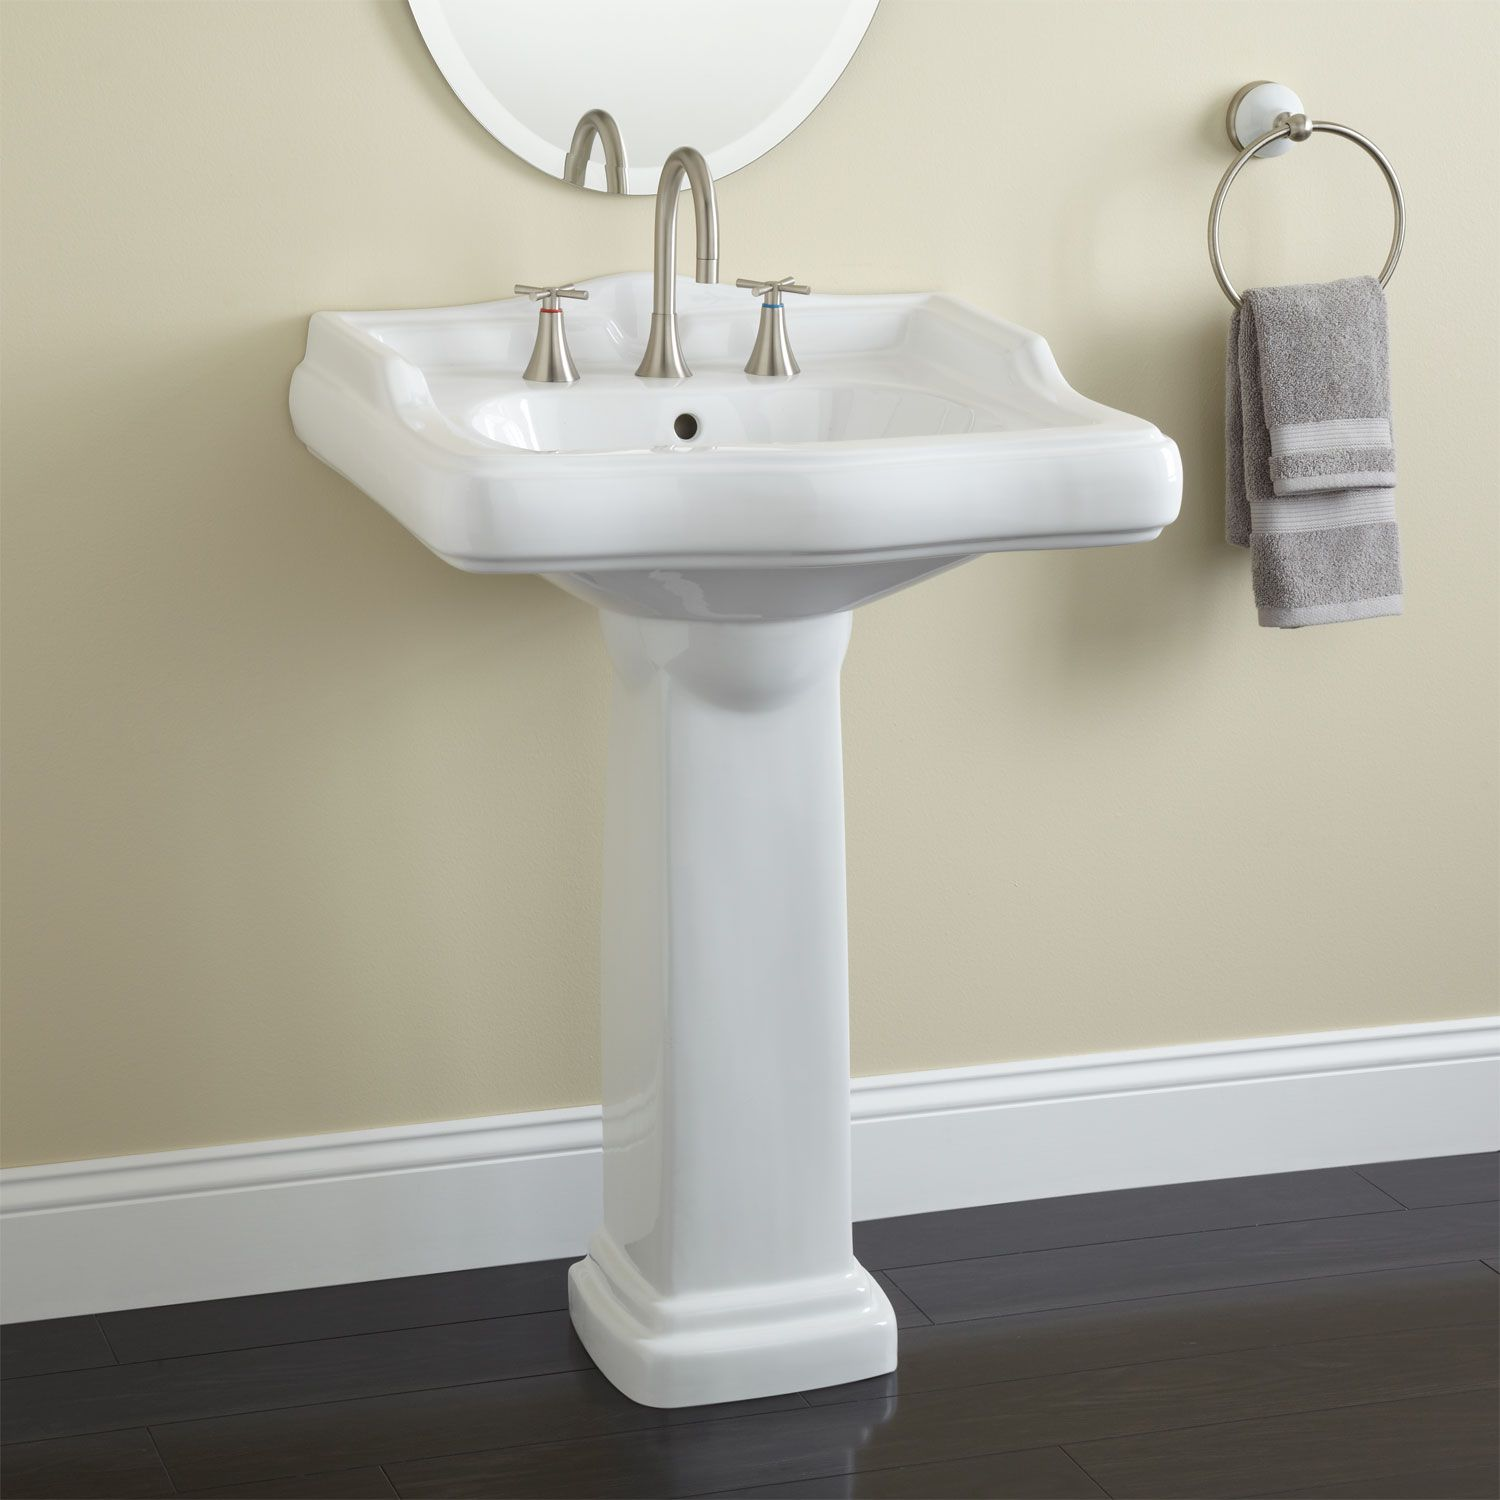 The Dawes Pedestal Sink Makes A Fantastic Addition To Traditional Bathrooms This Two Piece Pedestal Sink Is Made Of Pedestal Sink Bathroom Sink Pedestal Sinks